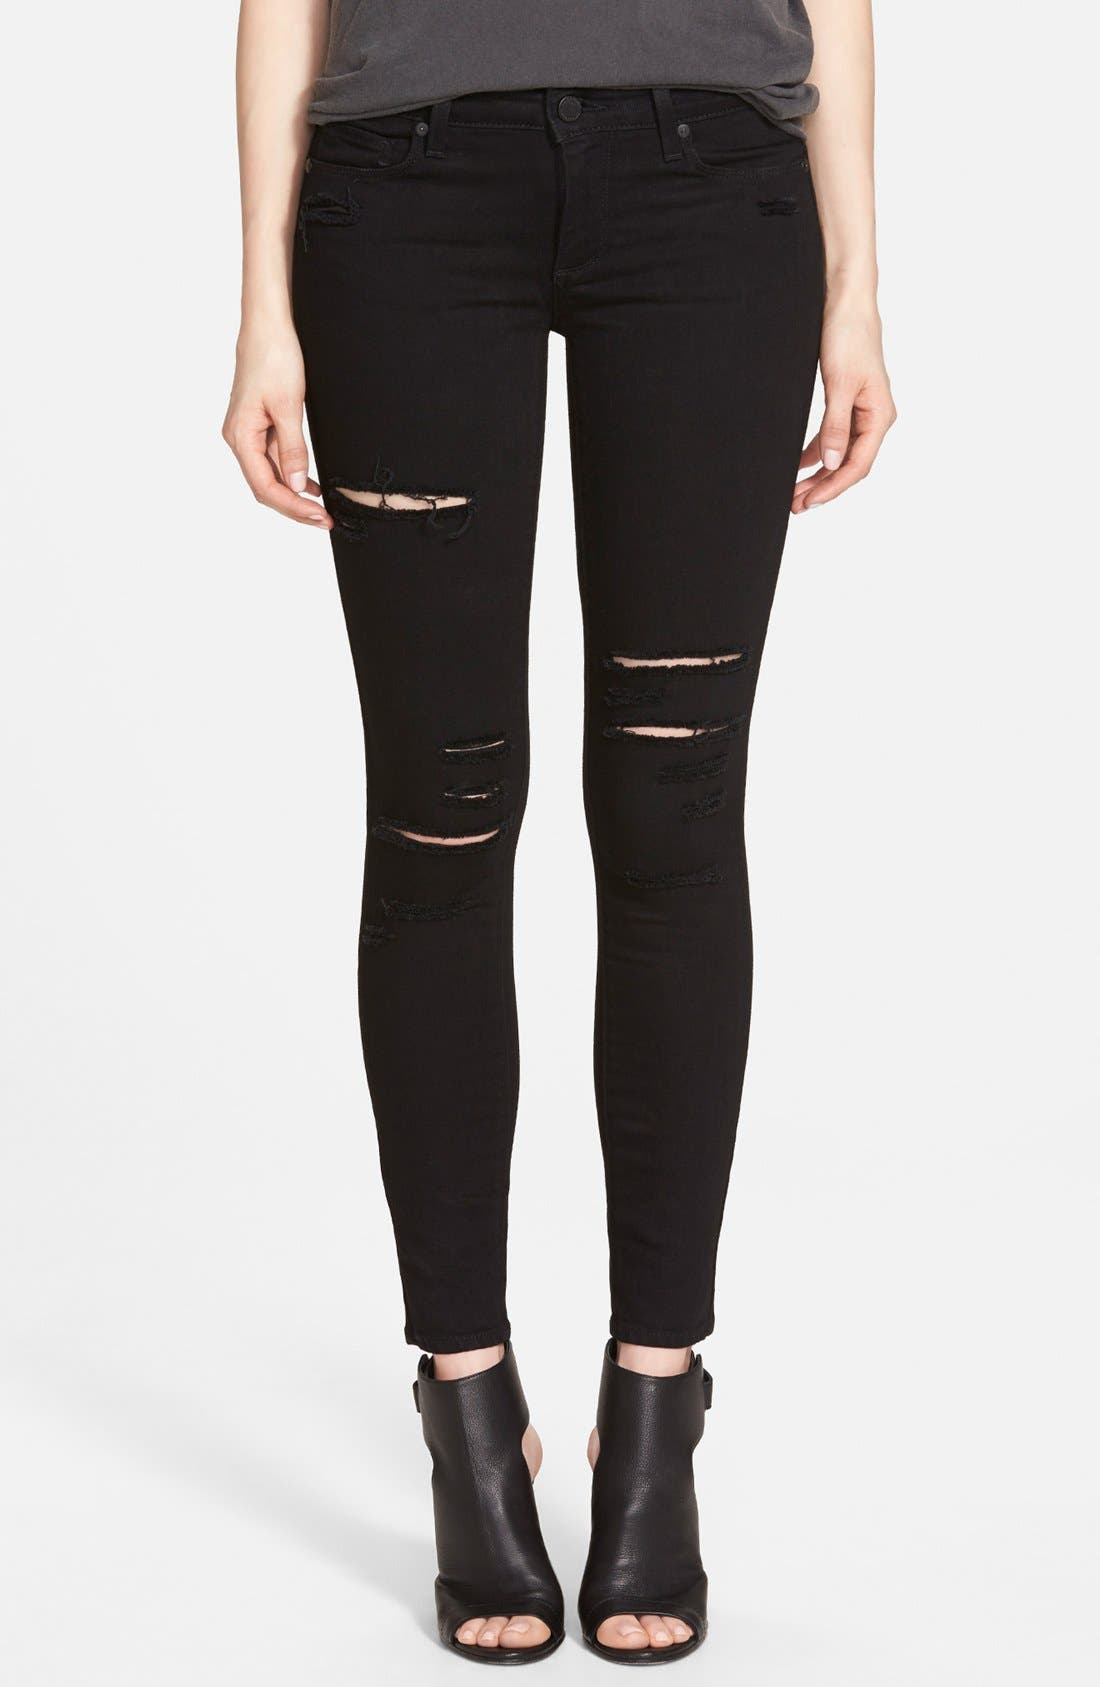 Alternate Image 1 Selected - Paige Denim 'Verdugo' Ankle Ultra Skinny Jeans (Black Arlo Destructed)